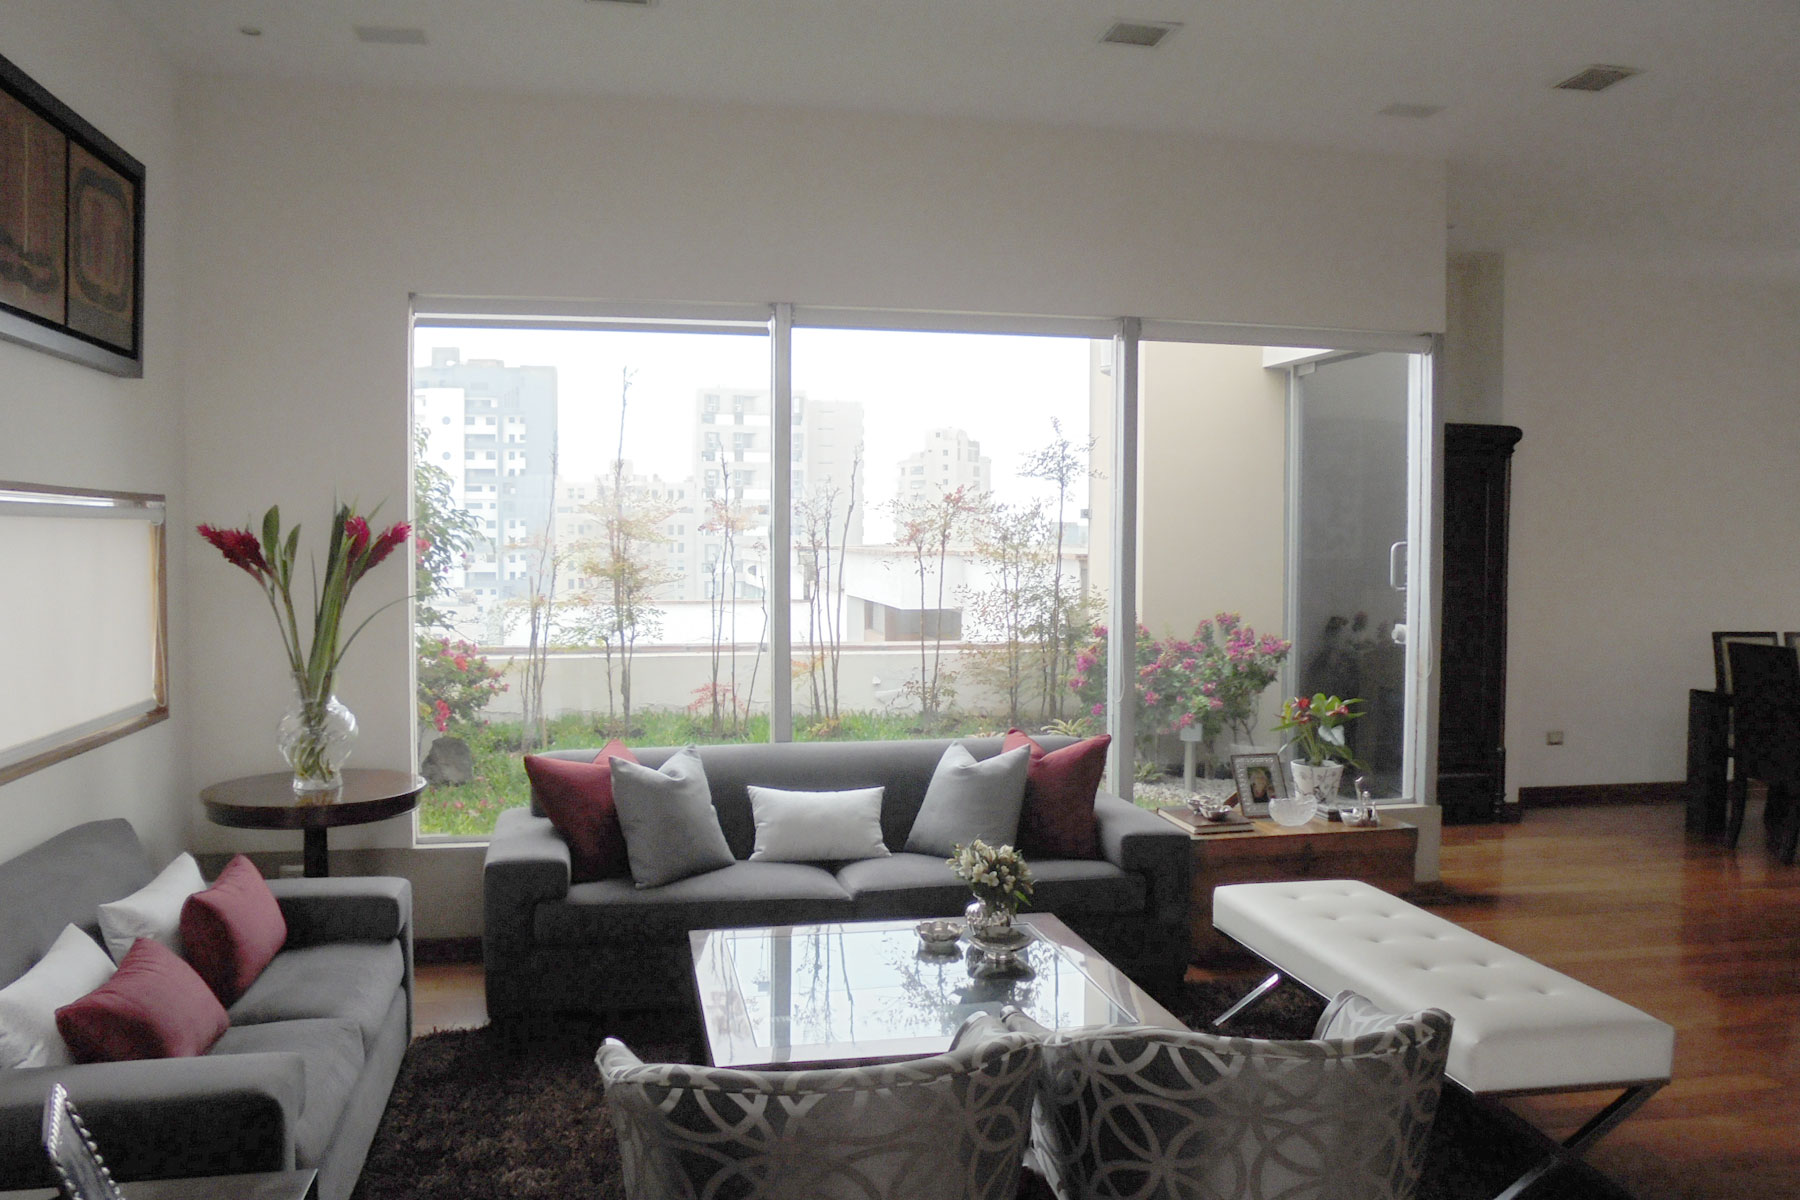 Apartment for Sale at Exclusivo Departamento Pent House Triplex en Miraflores Av. Pardo esquina Figueredo Miraflores, Lima, 18 Peru